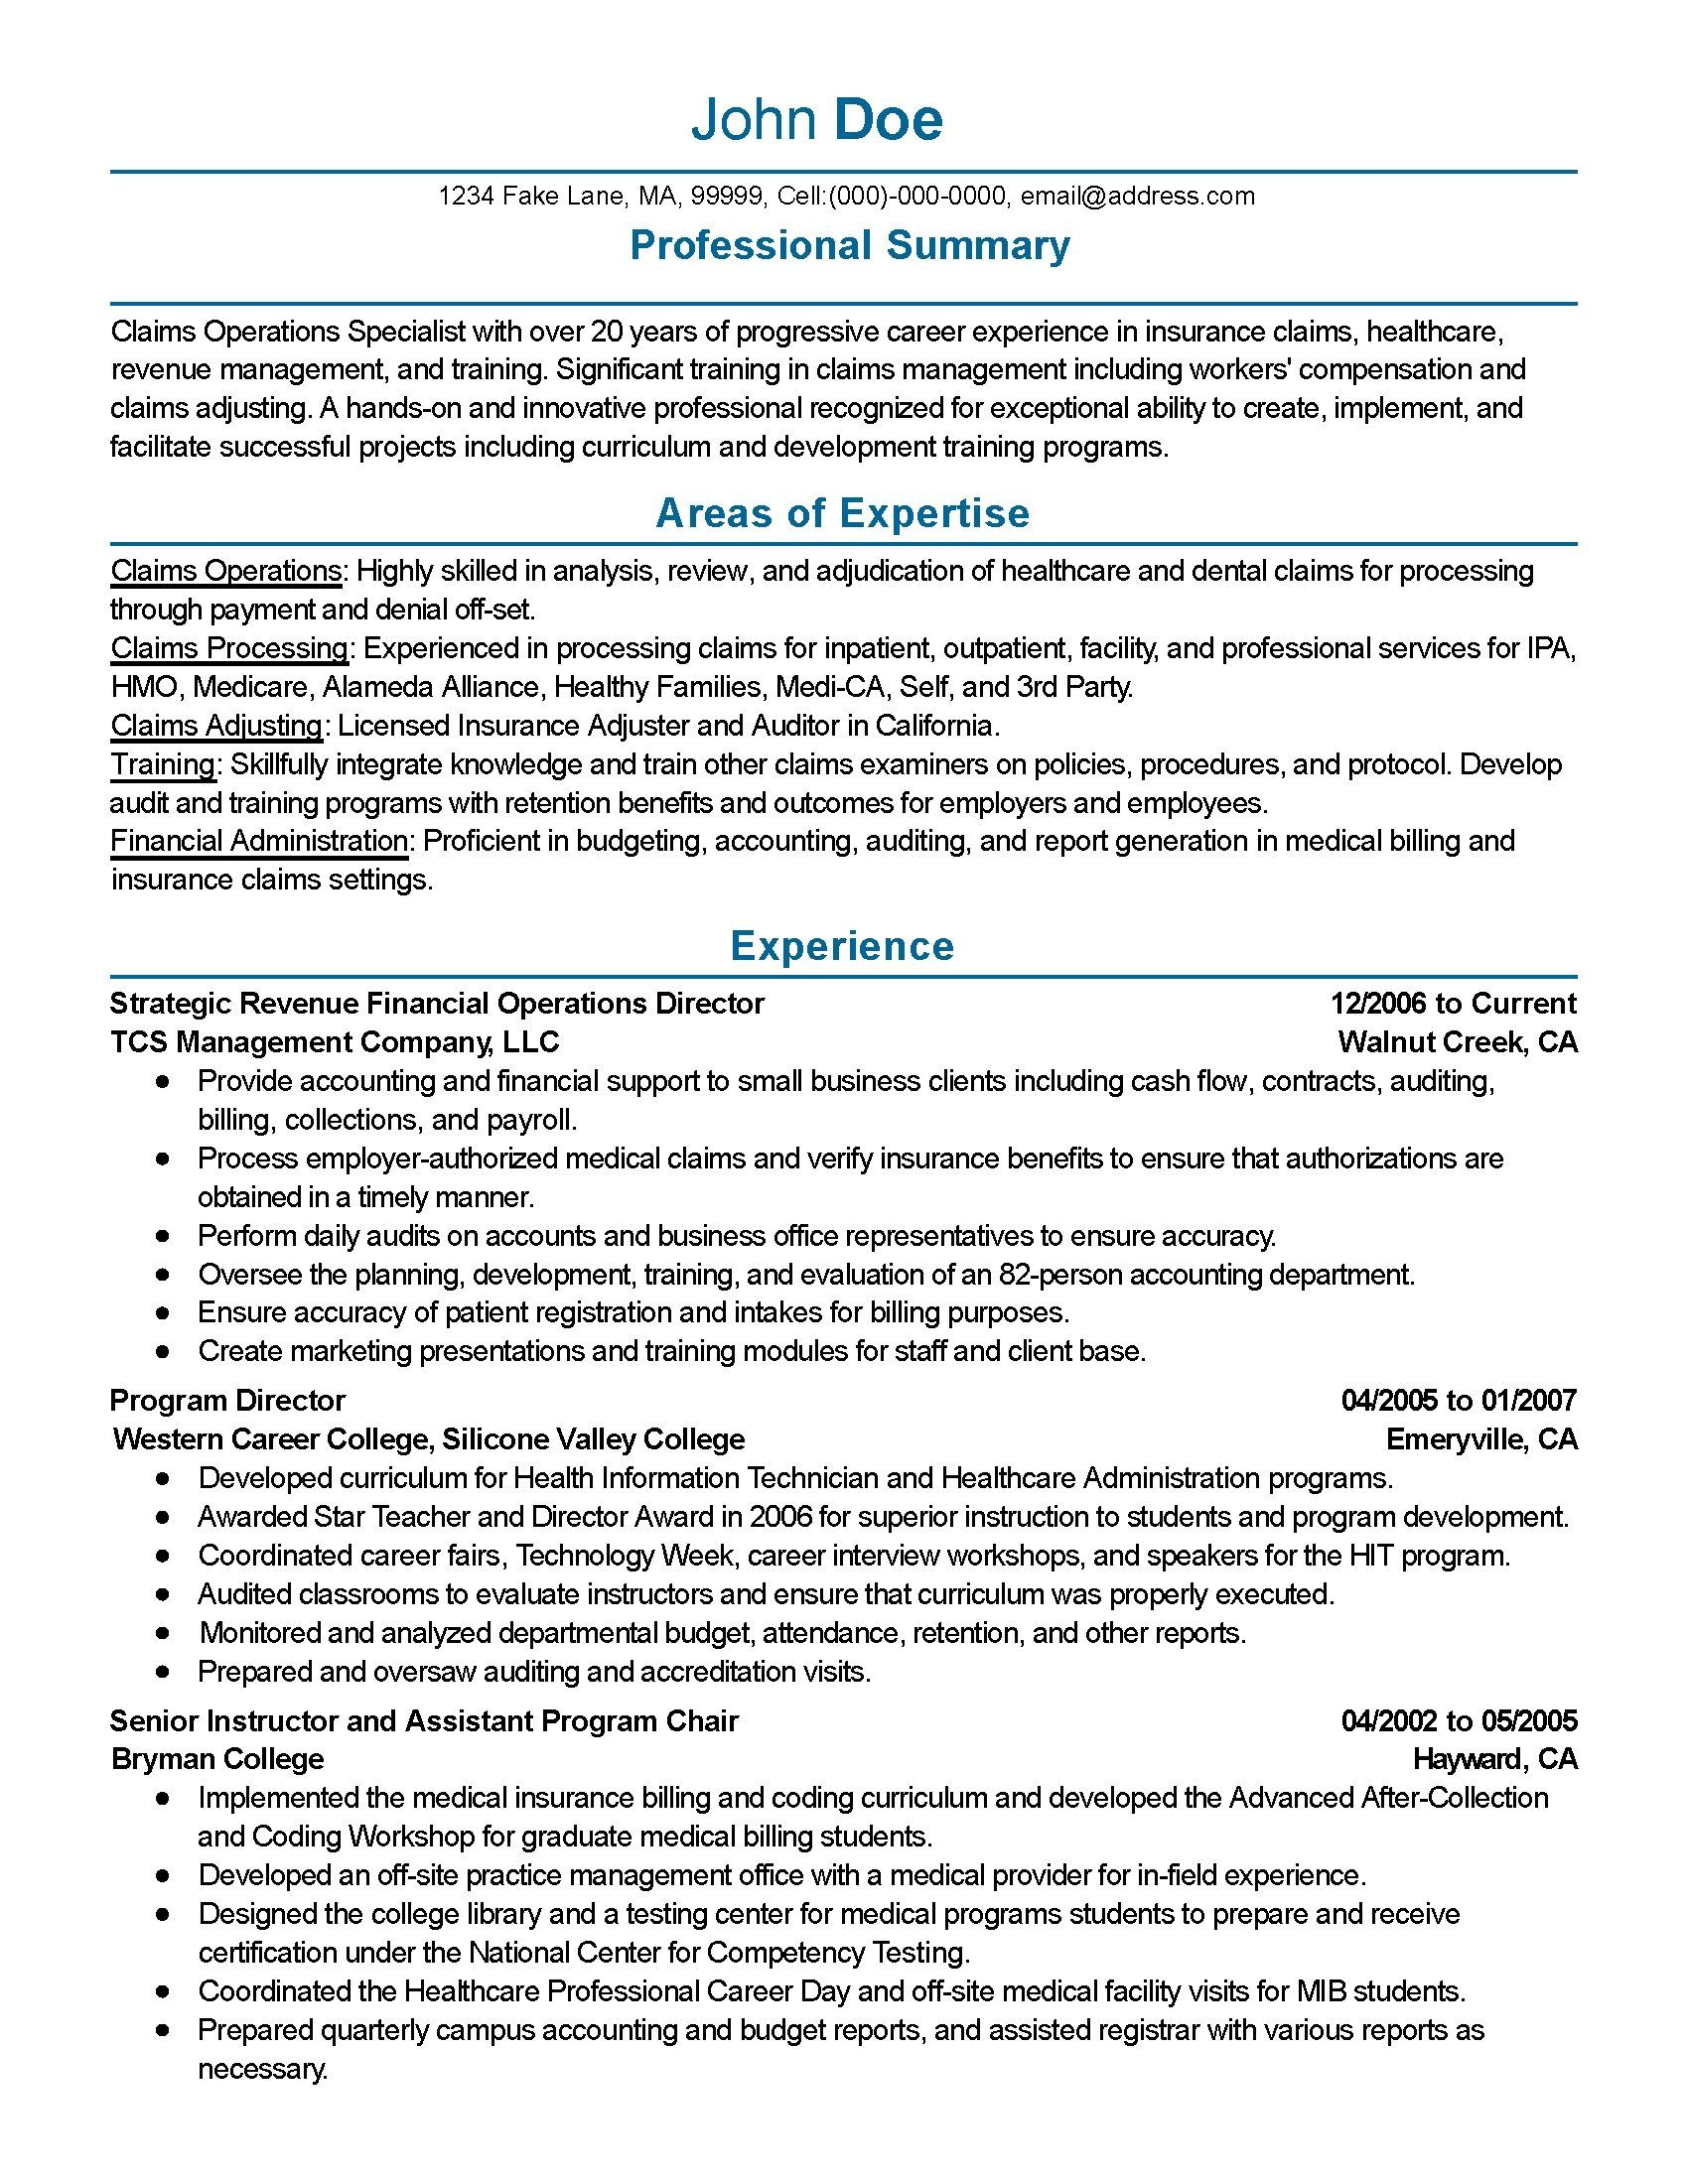 Claims adjuster resume sample lovely claims adjuster